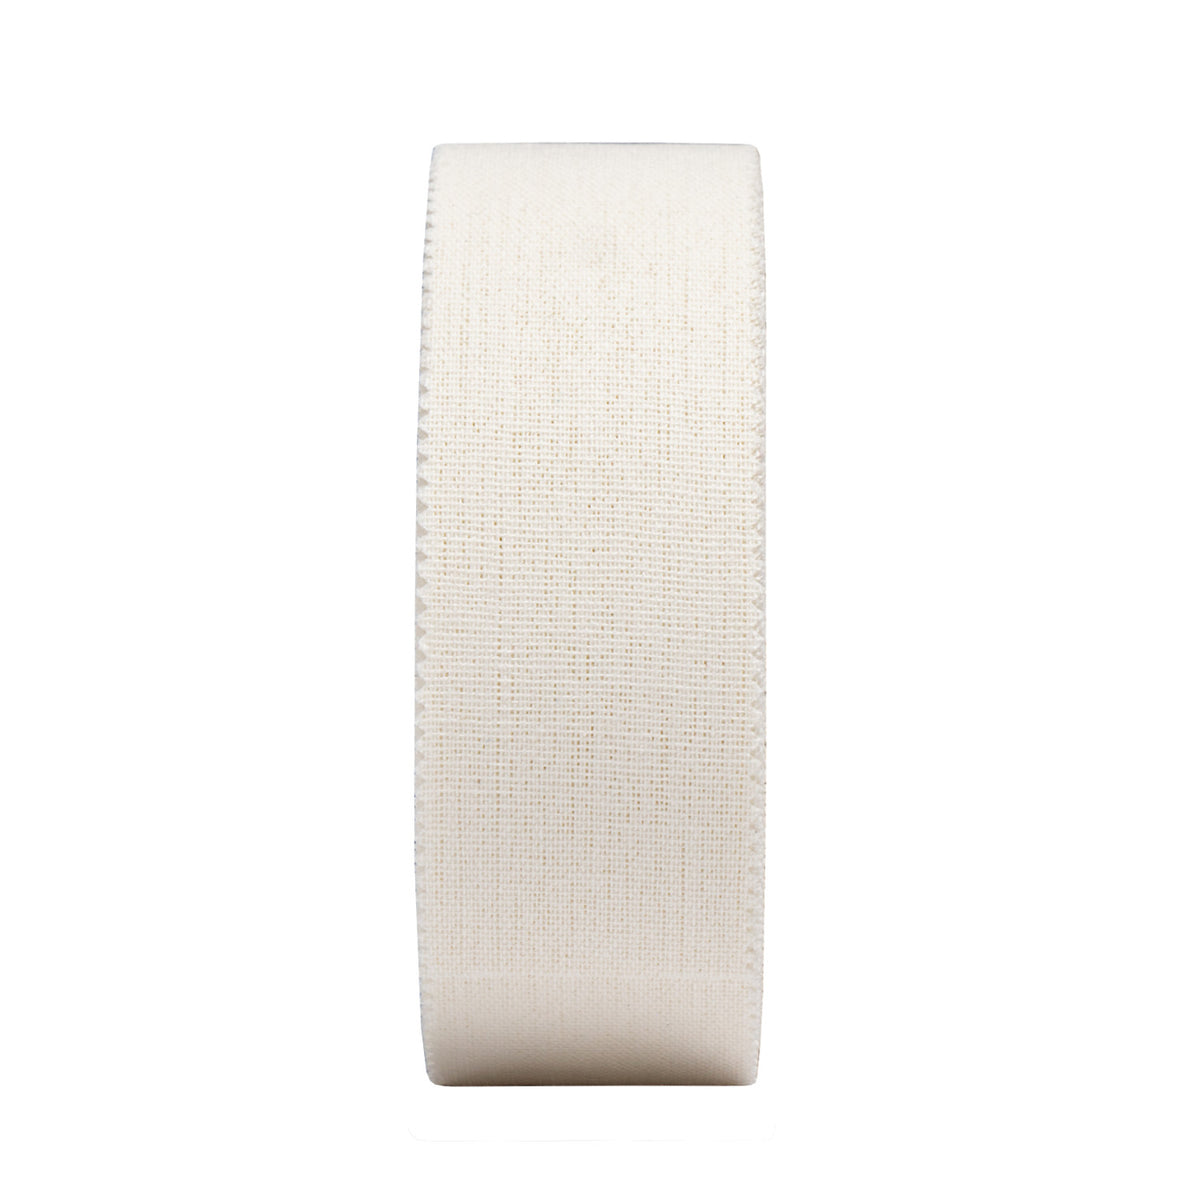 Rock + Run Finger Tape 2.5CM X 13.7M - White (3 Pack)